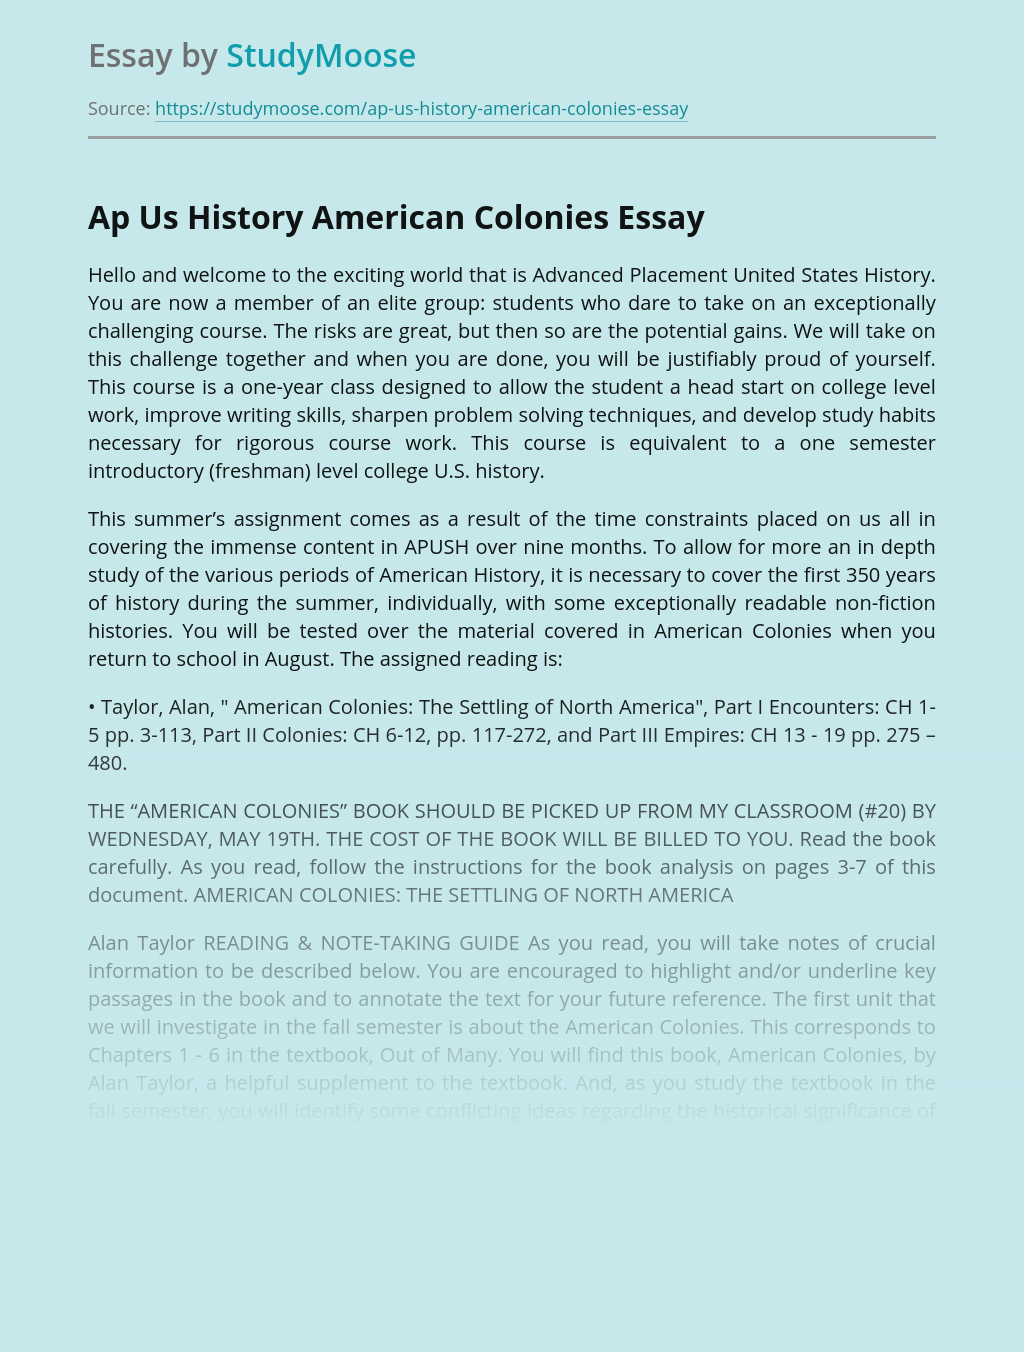 Advanced Placement US History American Colonies